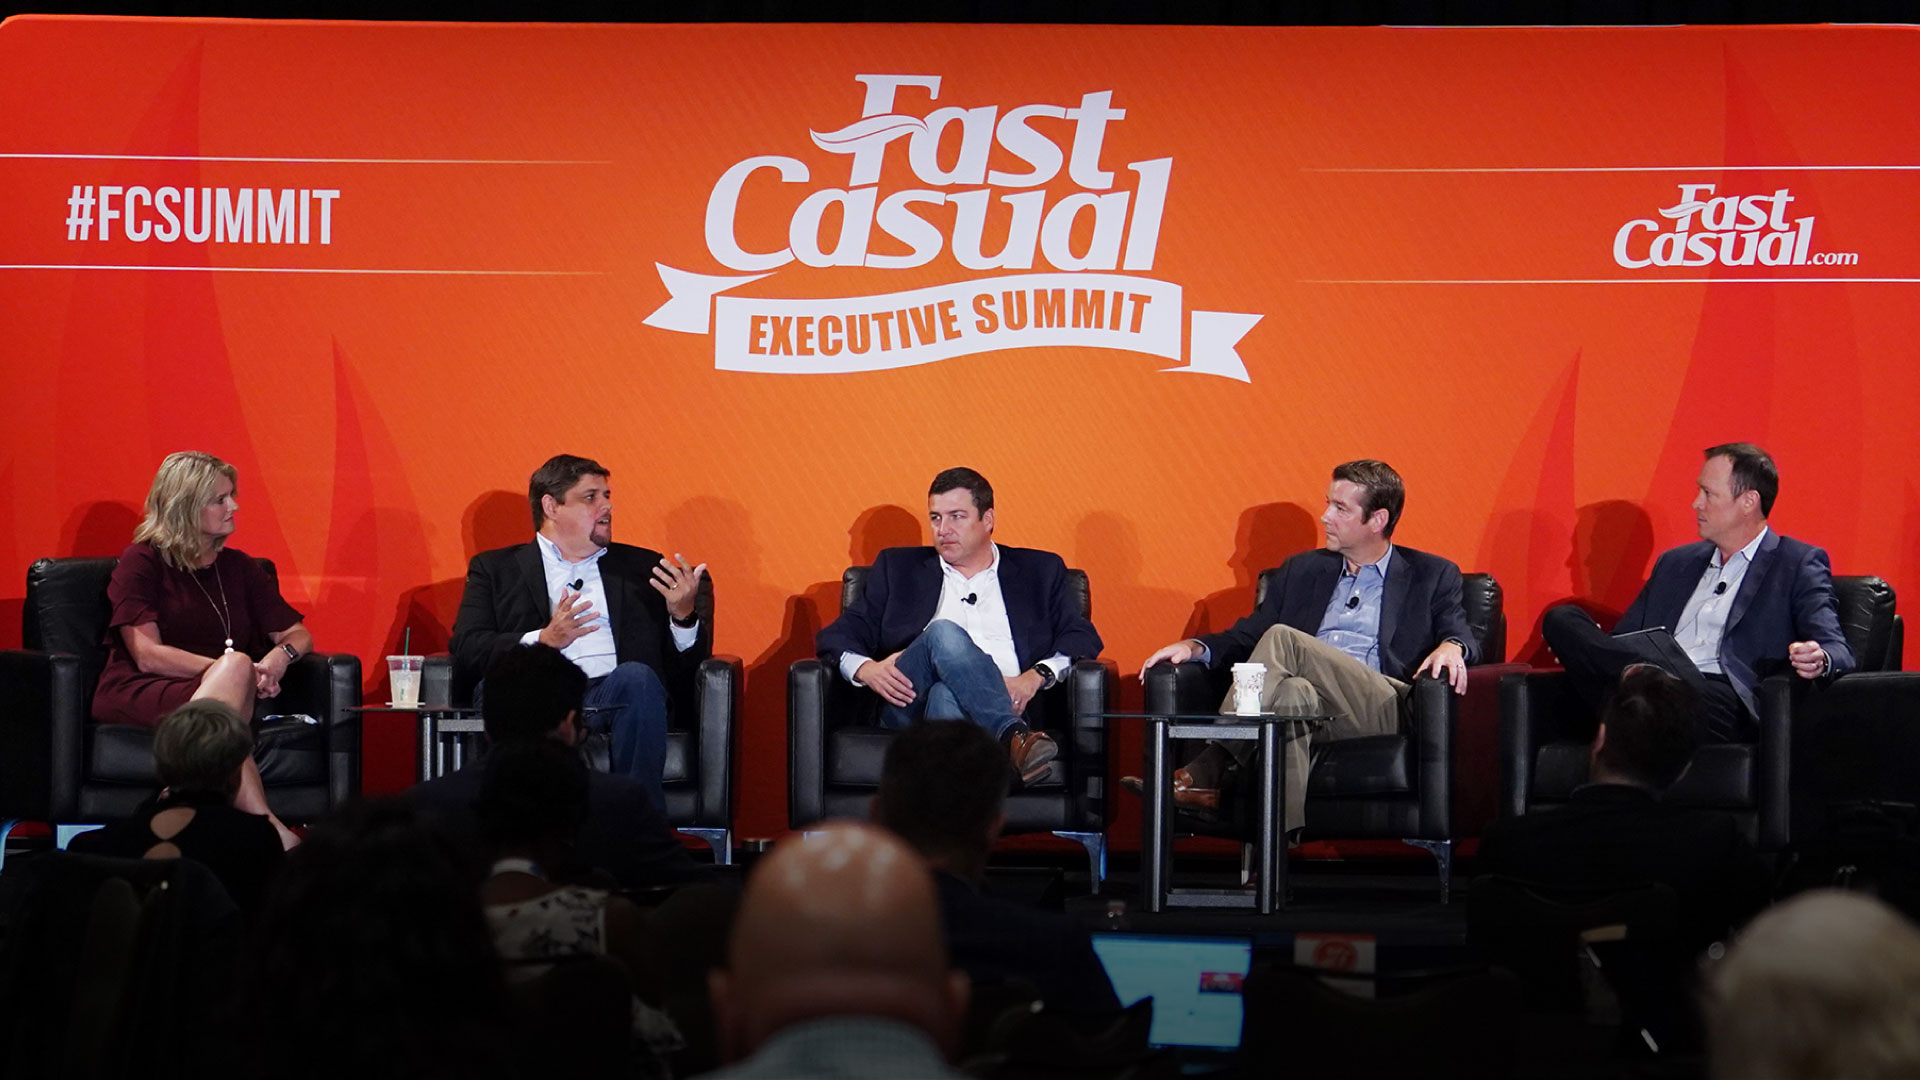 Five Insights You May Have Missed from the 2019 Fast Casual Executive Summit